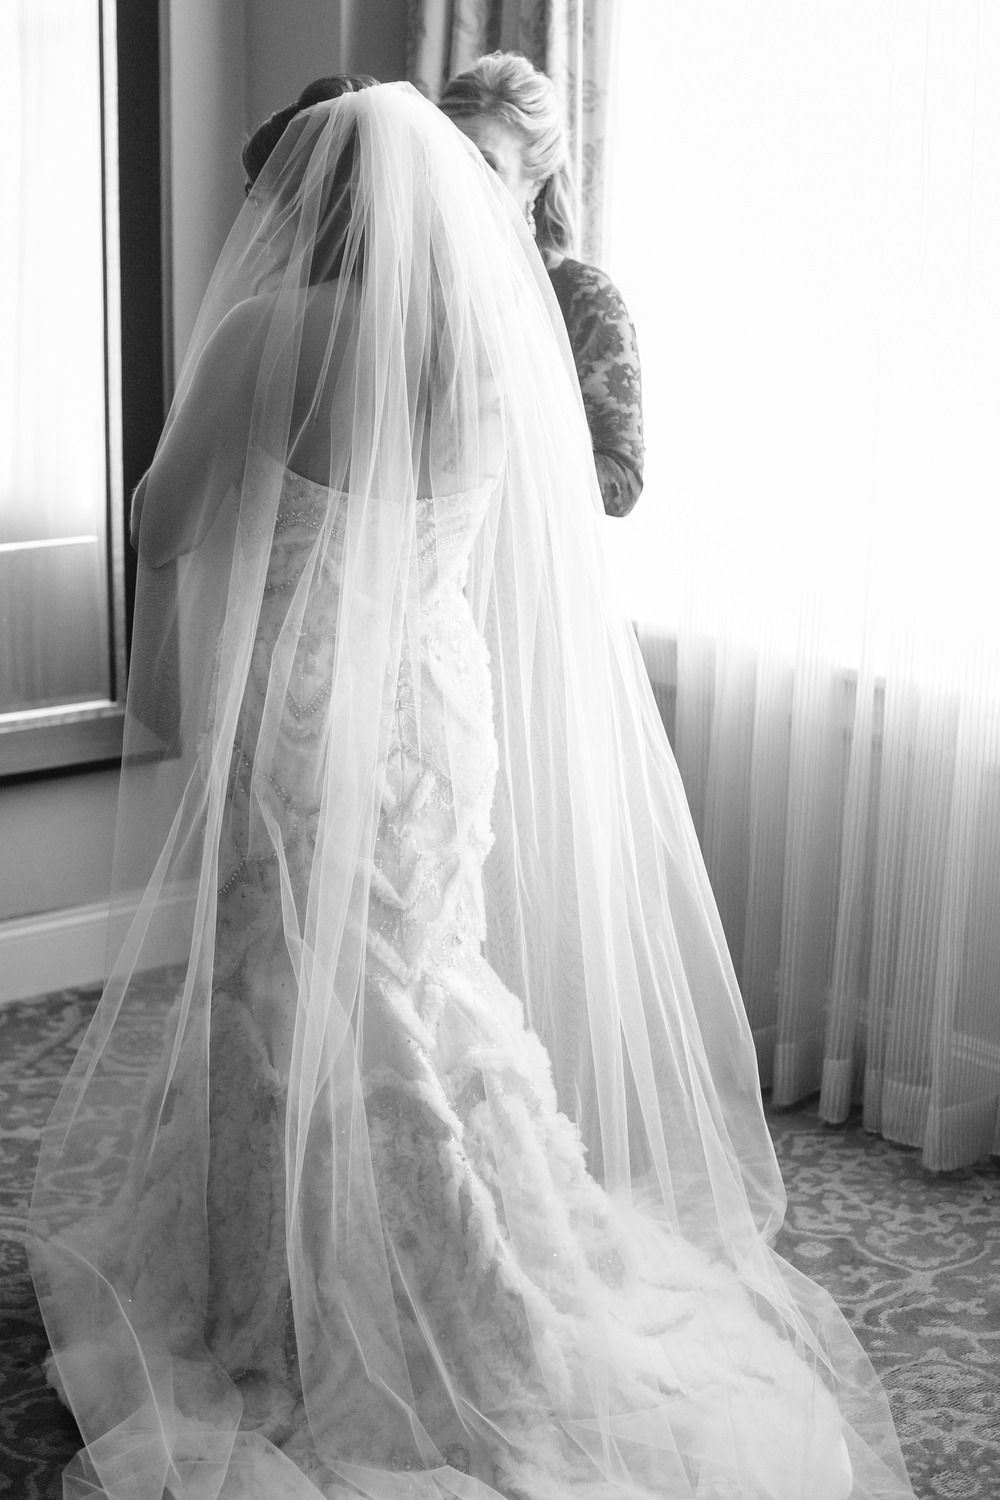 back of bride getting dressed with long cathedral length veil in a window